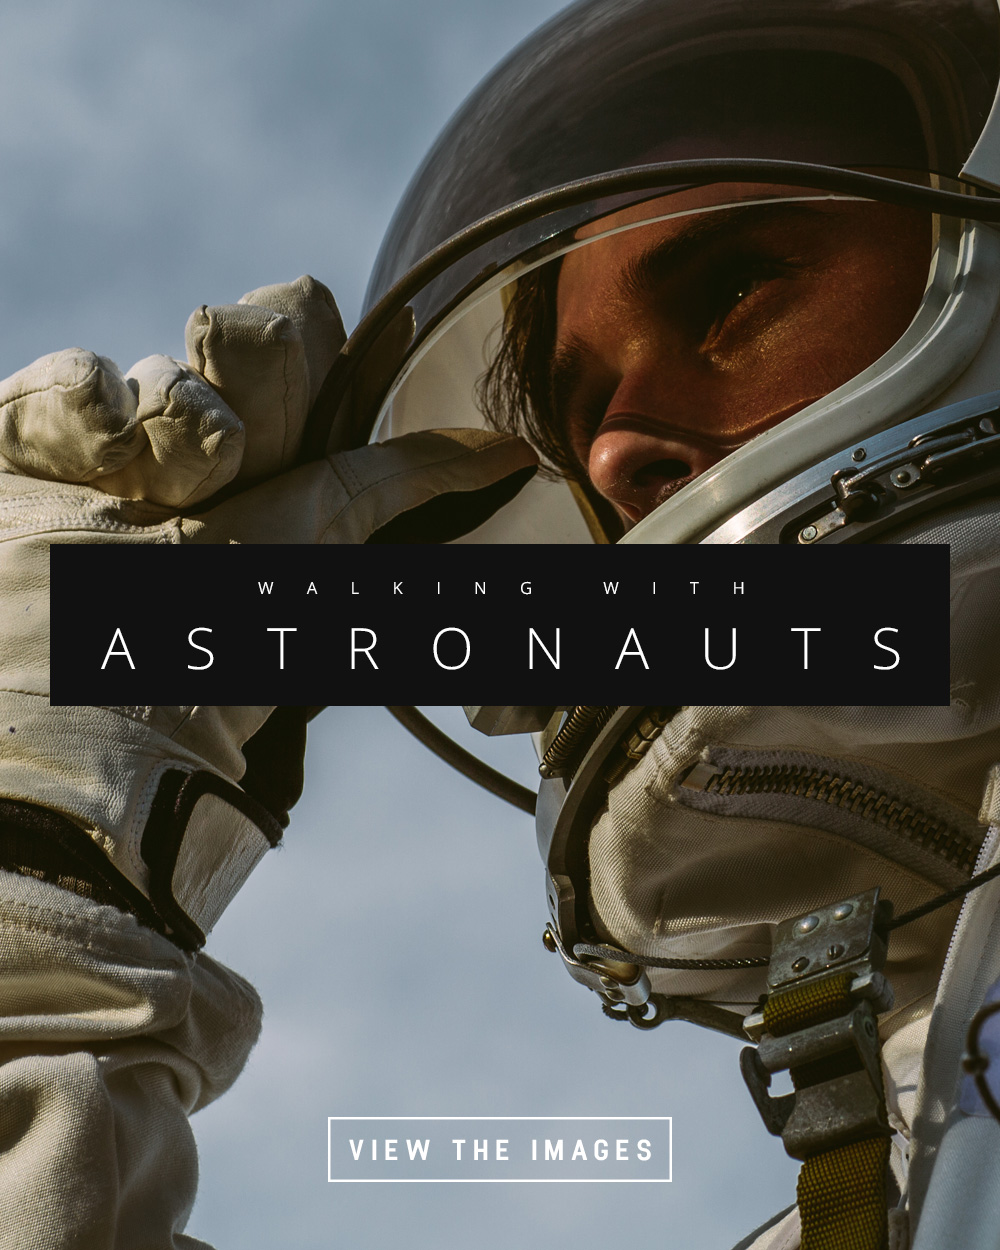 Walking with Astronauts